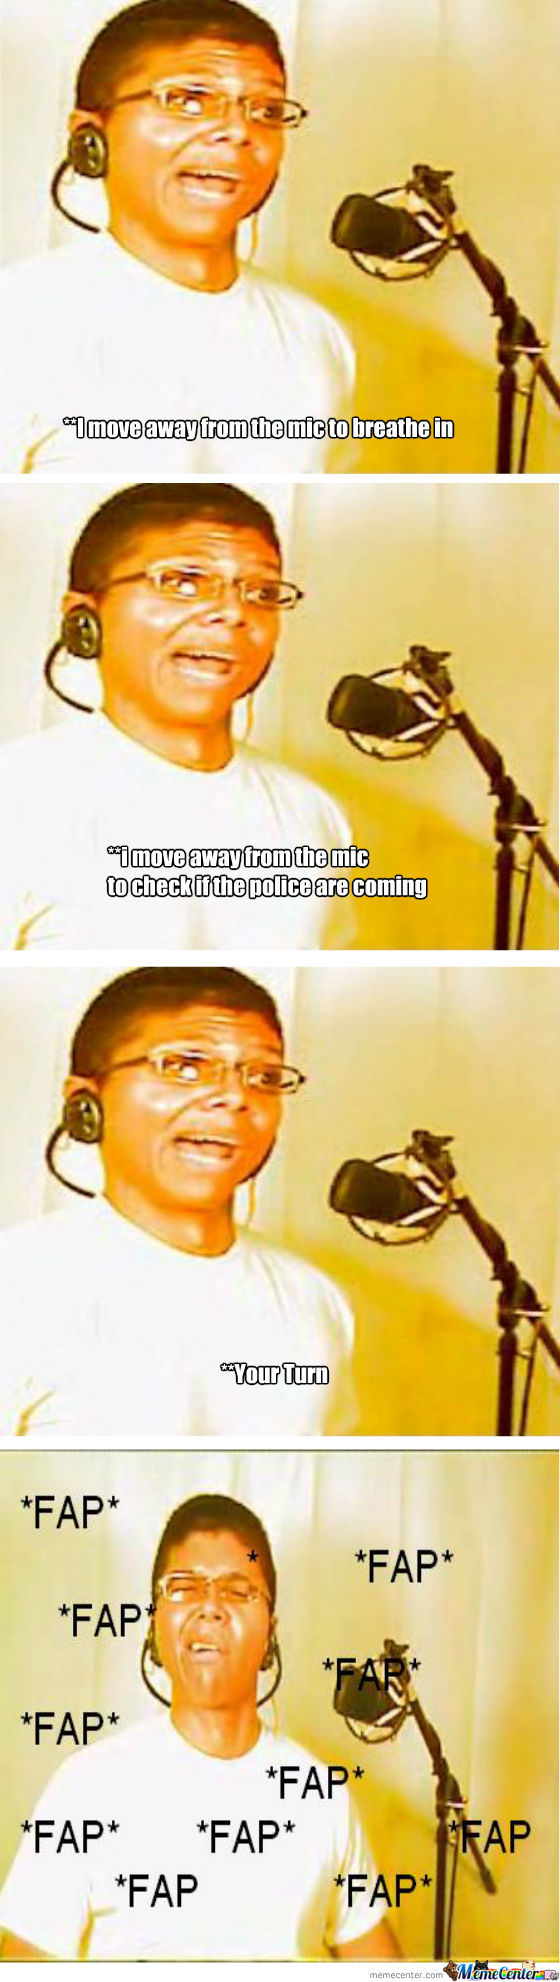 Chocolate Rain (Captain Obvious) by recyclebin - Meme Center